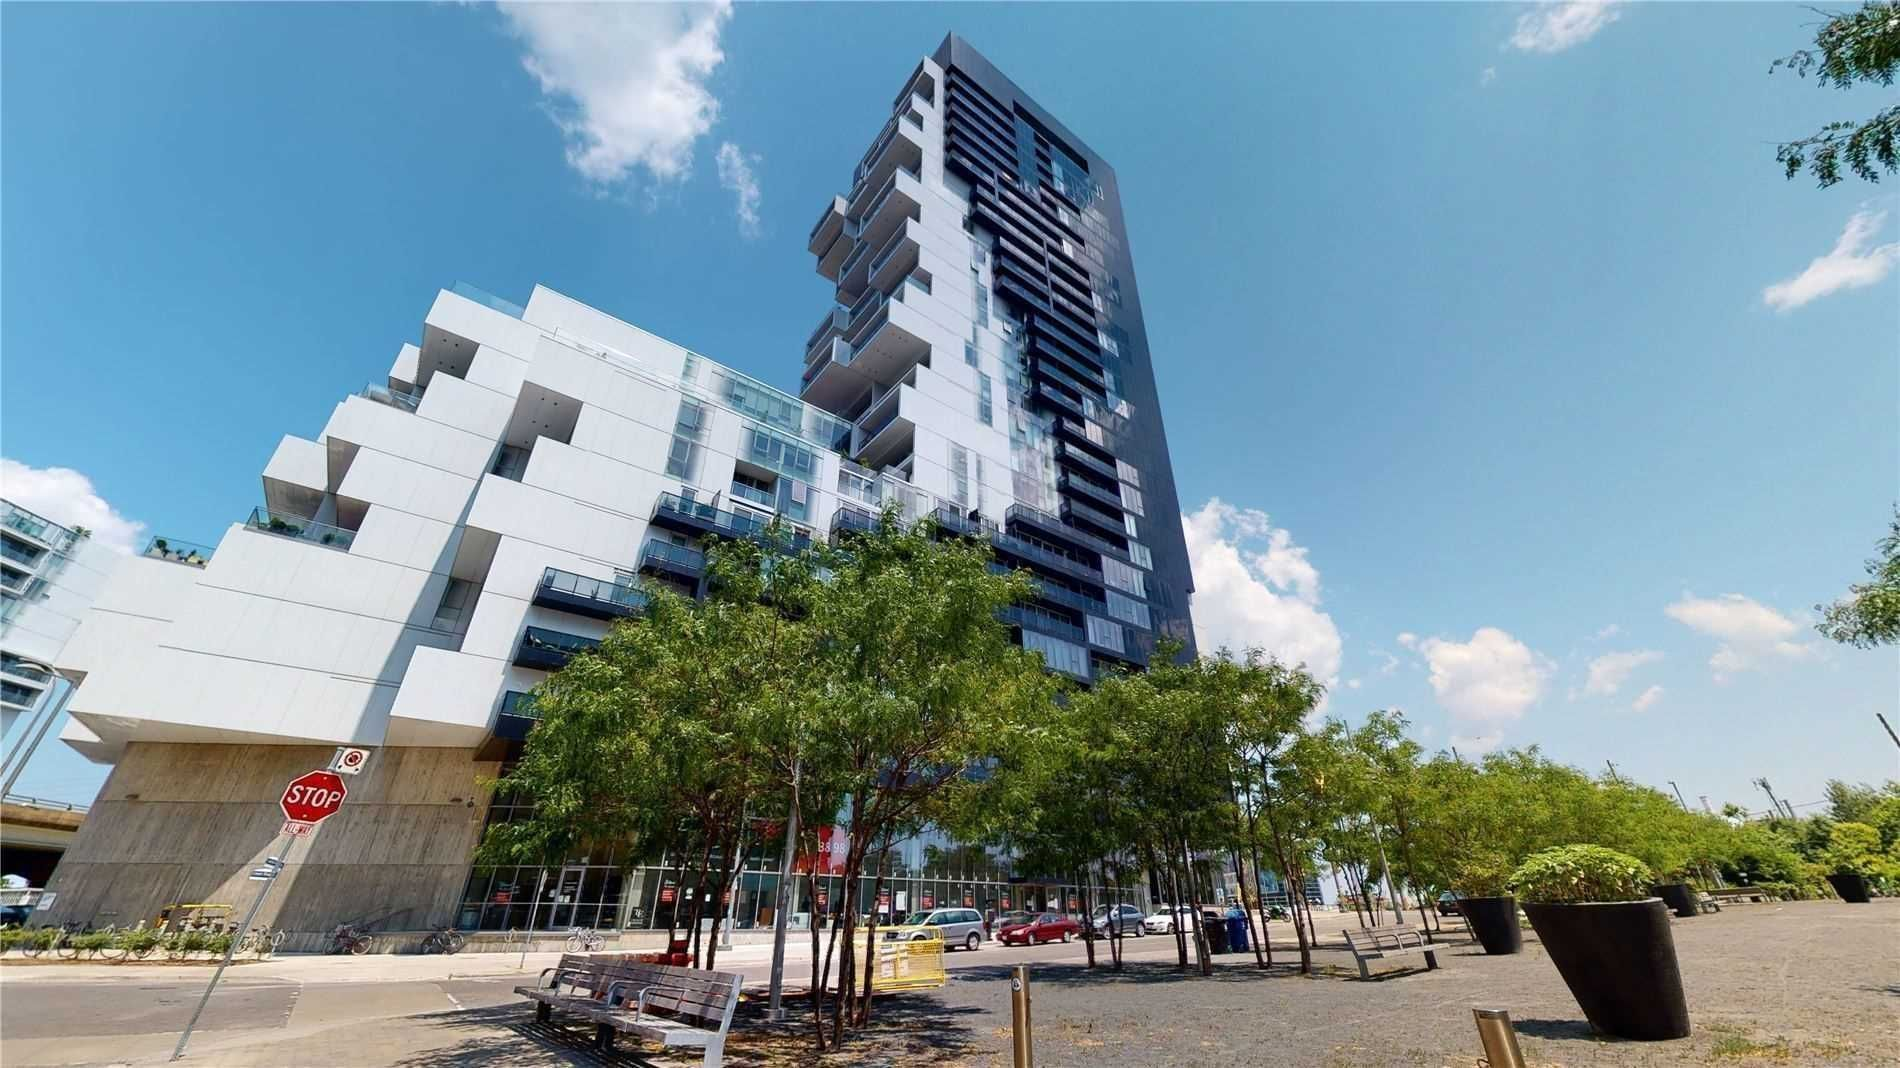 170 Bayview Ave, unit 1601 for rent in Toronto - image #2